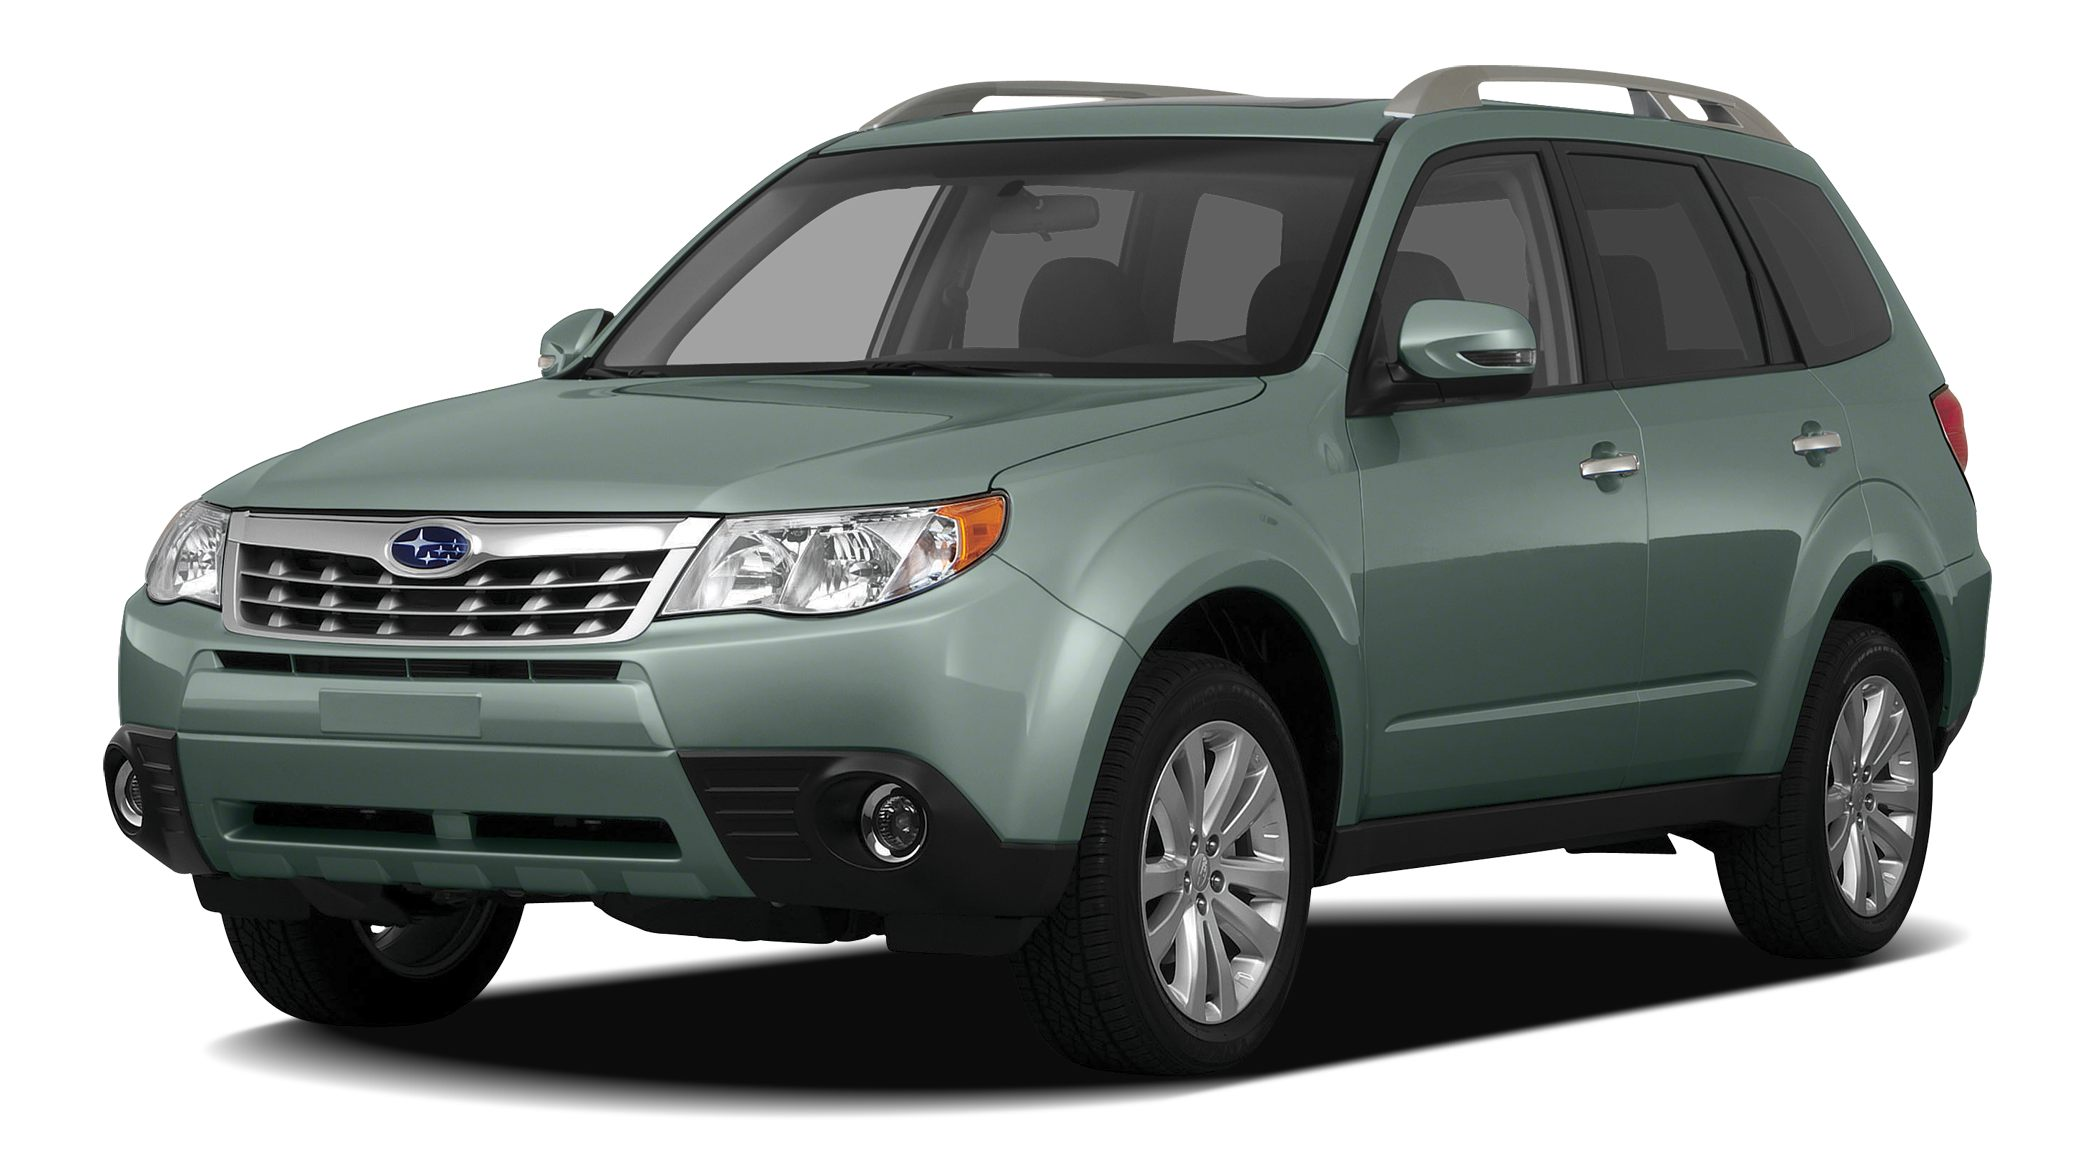 2011 Subaru Forester 25 X Premium Miles 16483Color Sage Green Metallic Stock T25774A VIN JF2